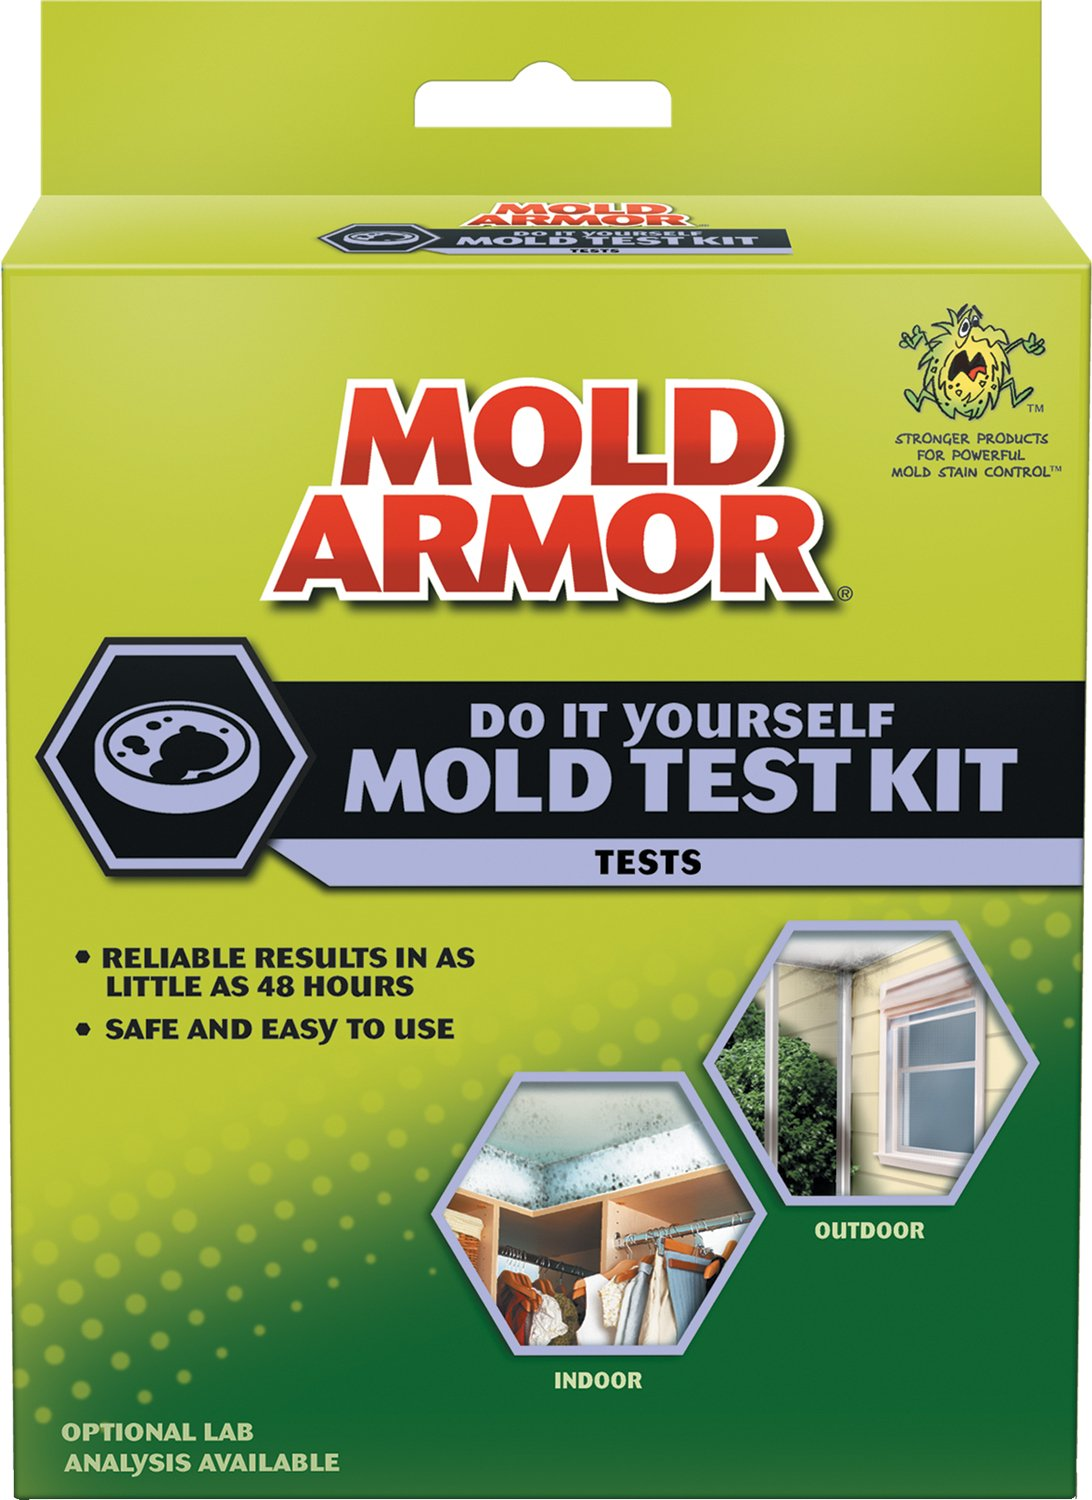 Mold Armor FG500 Do It Yourself Mold Test Kit Review